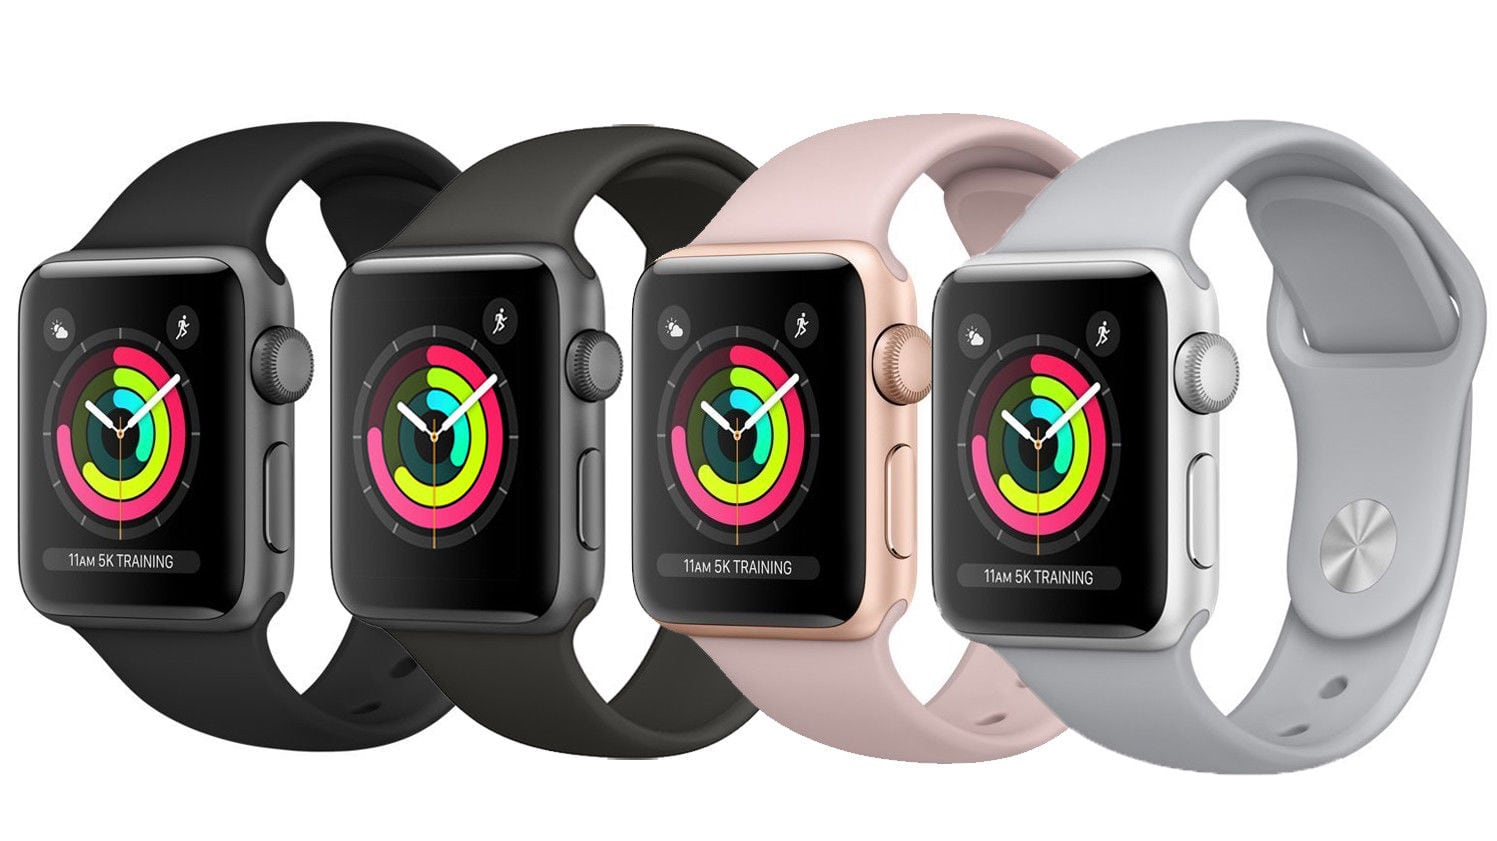 Apple Watch Series 3 Smartwatch (various colors) 38mm $292.50 AC, 42mm $319.50 AC + Free Shipping @ eBay